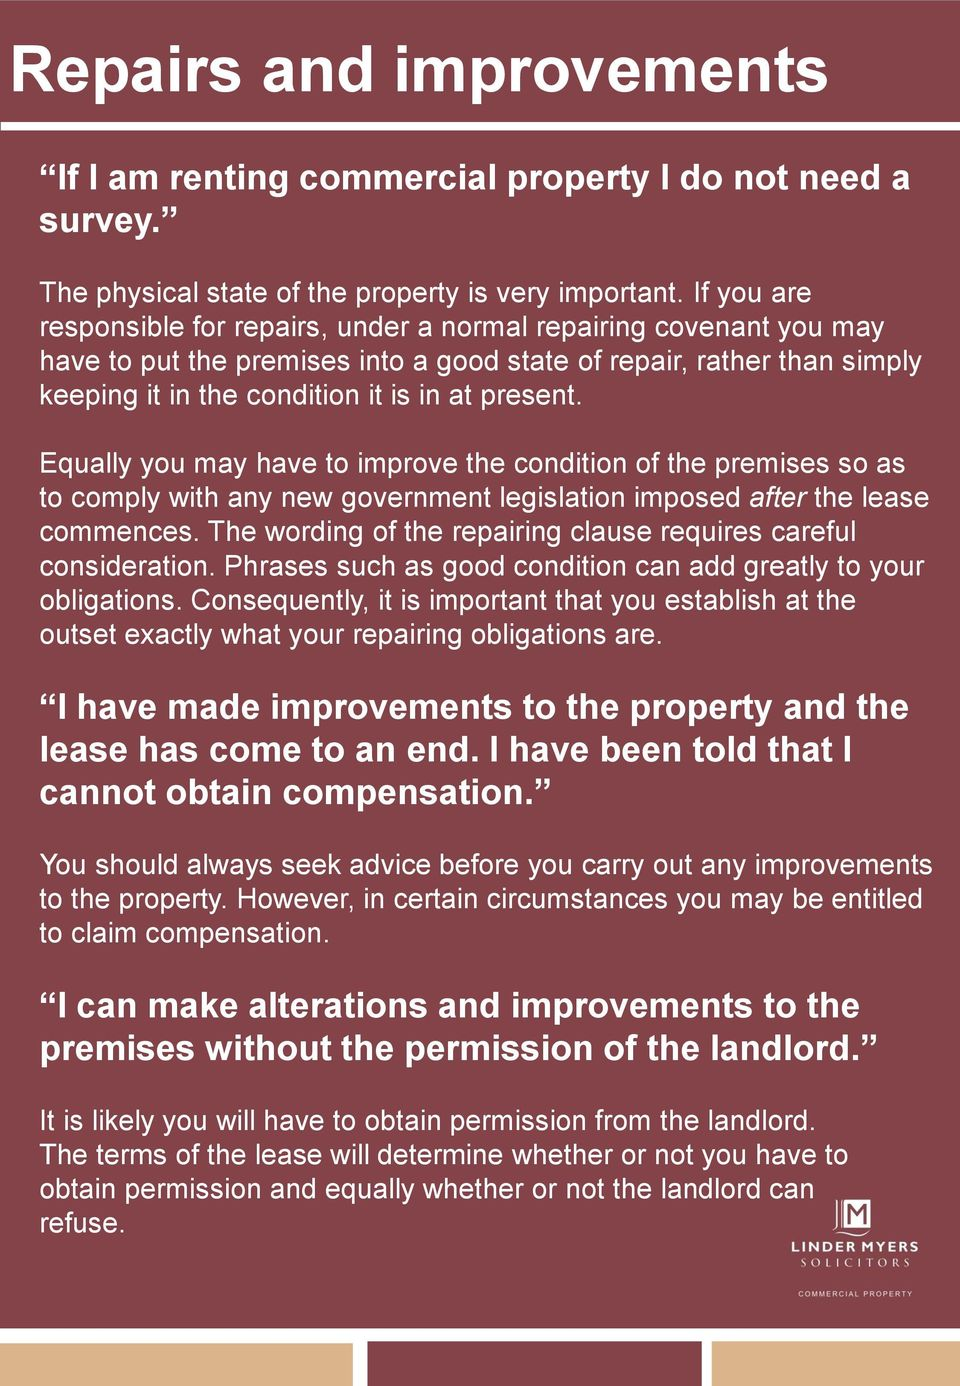 Equally you may have to improve the condition of the premises so as to comply with any new government legislation imposed after the lease commences.